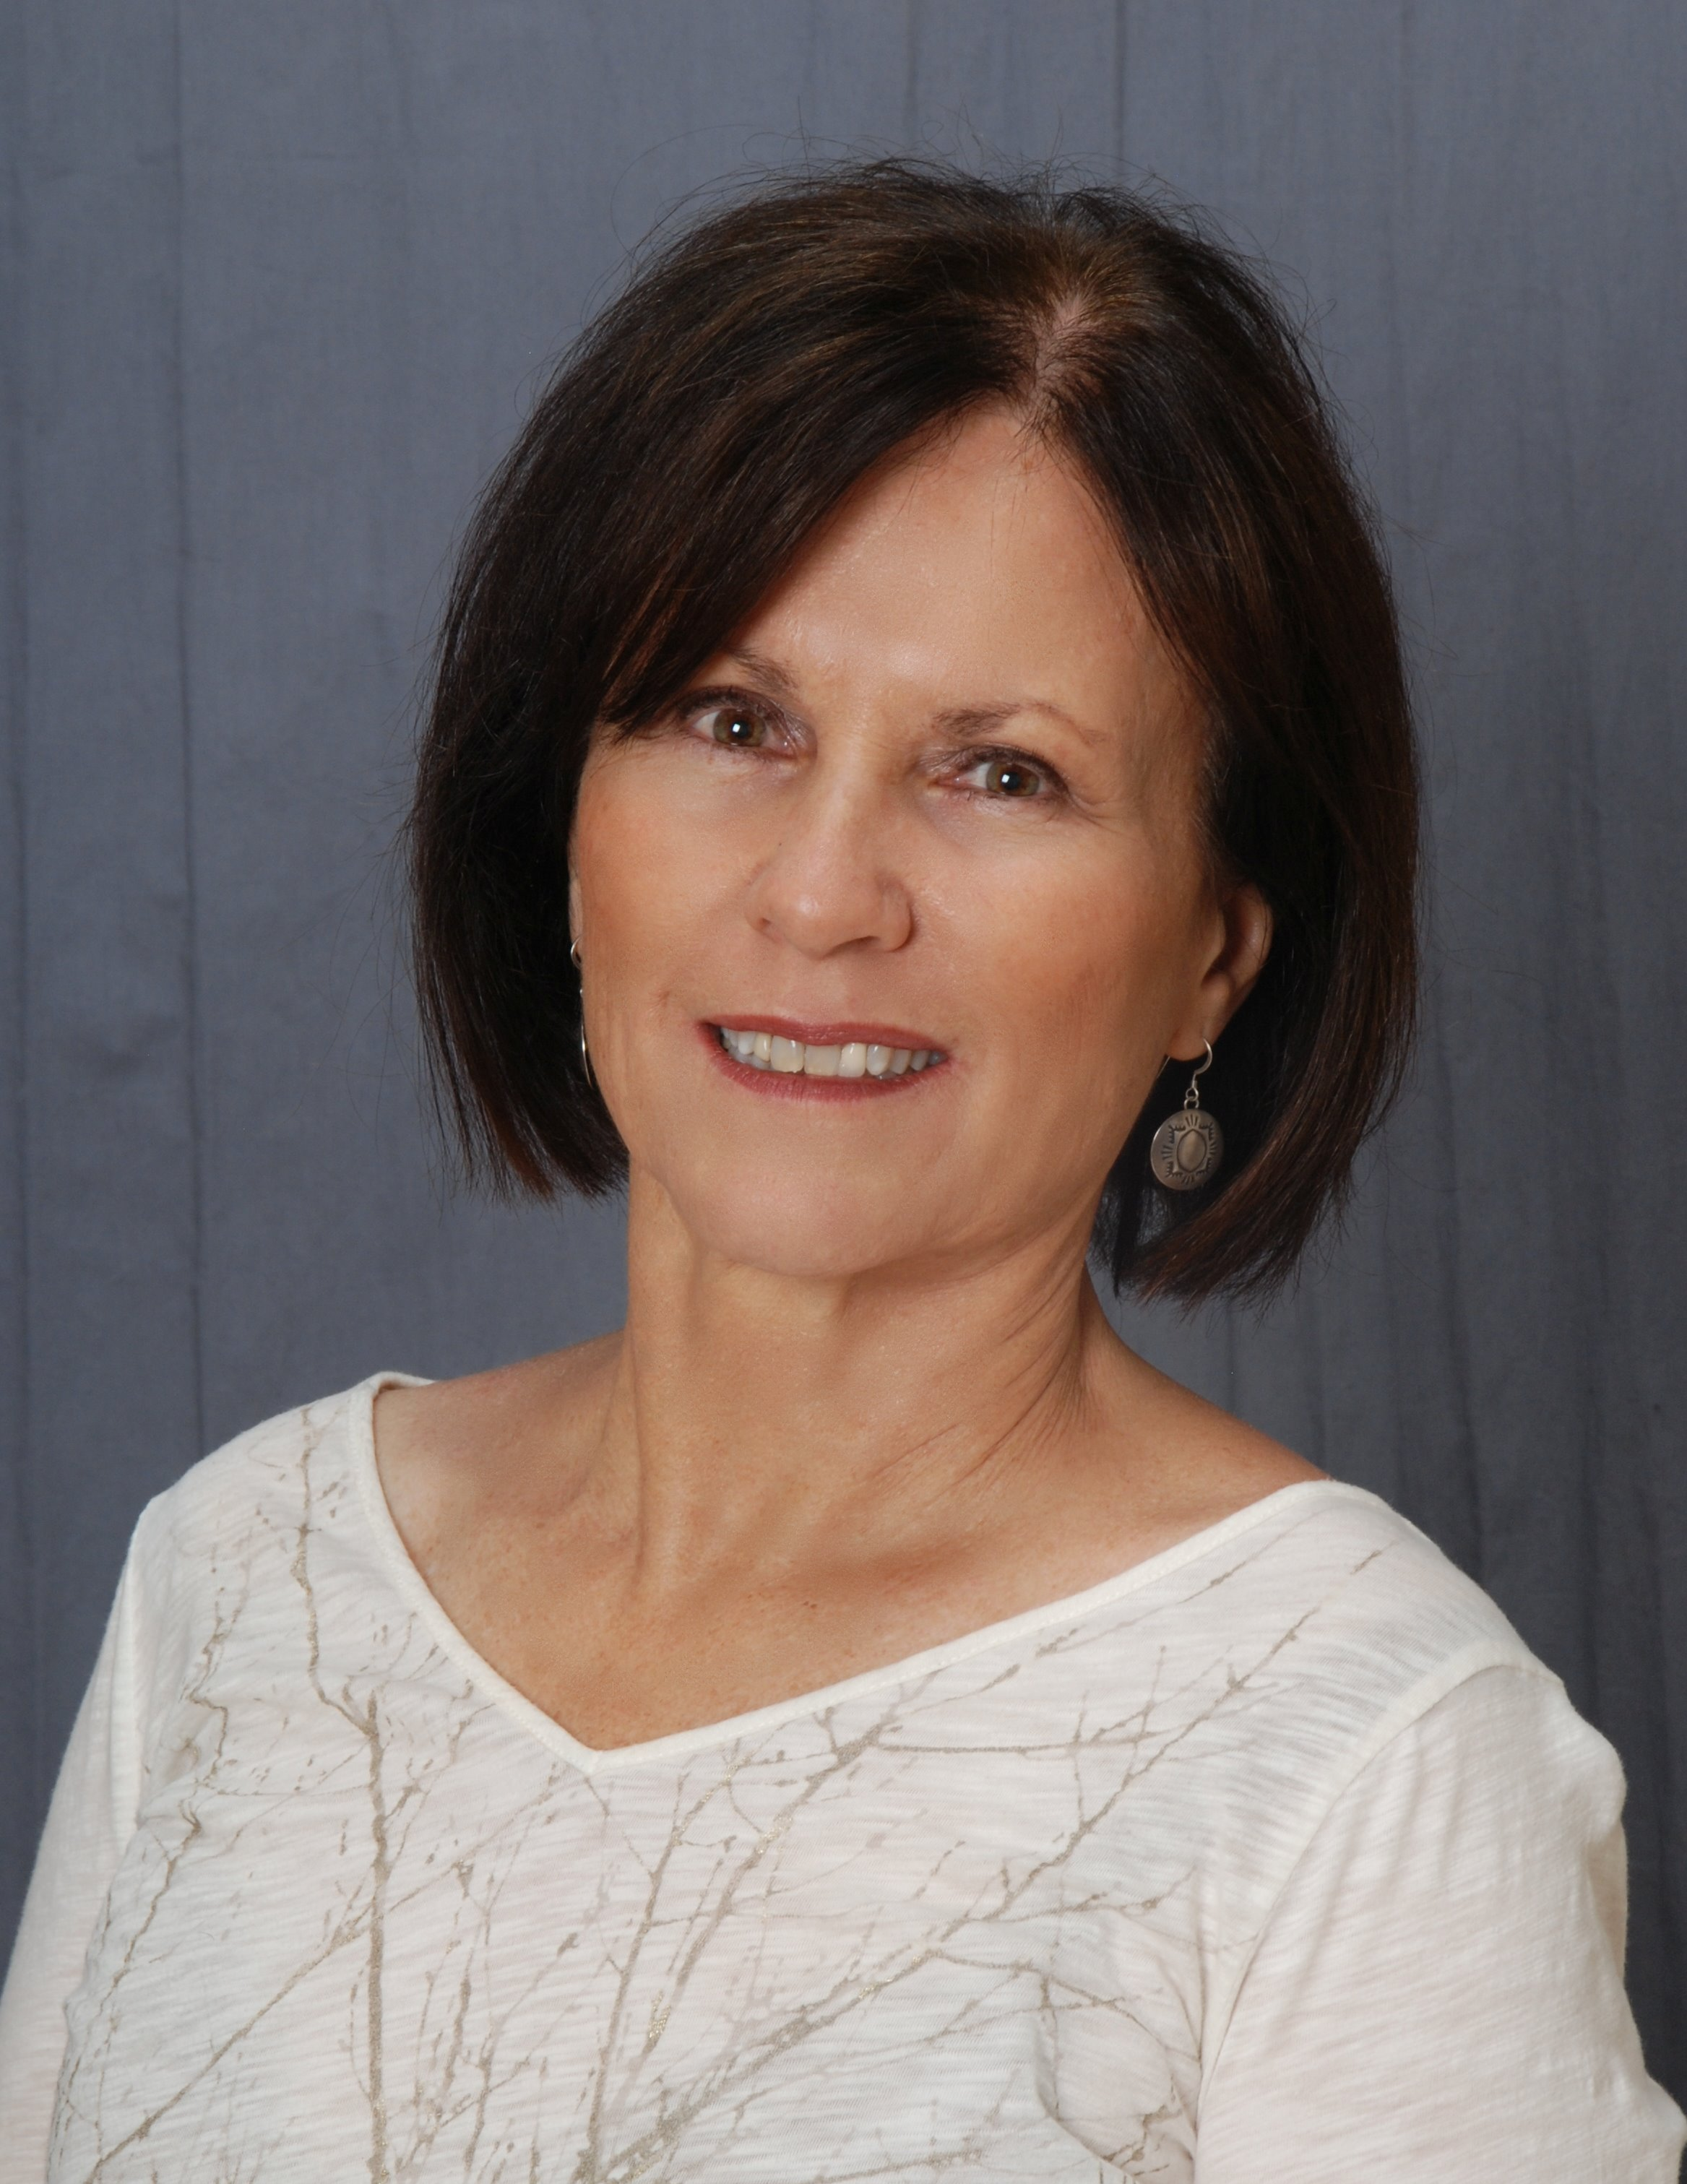 Sue Sue is a licensed real estate agent in Tucson AZ